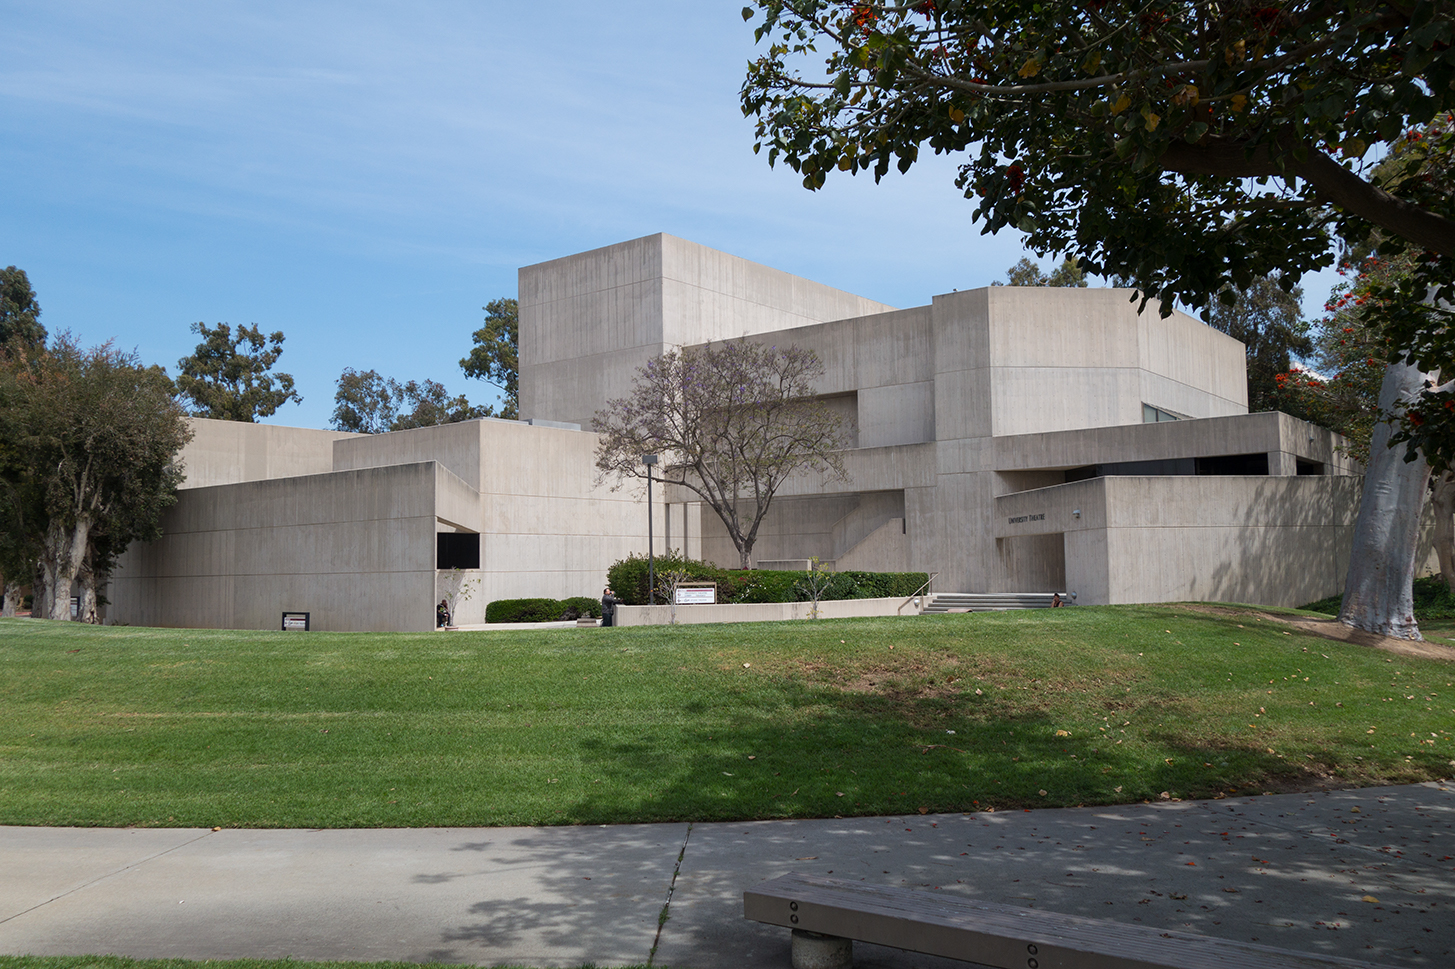 csudh library thesis Csudh university library ask us i need to see a master's thesis do you have them in the library california state university dominguez hills.